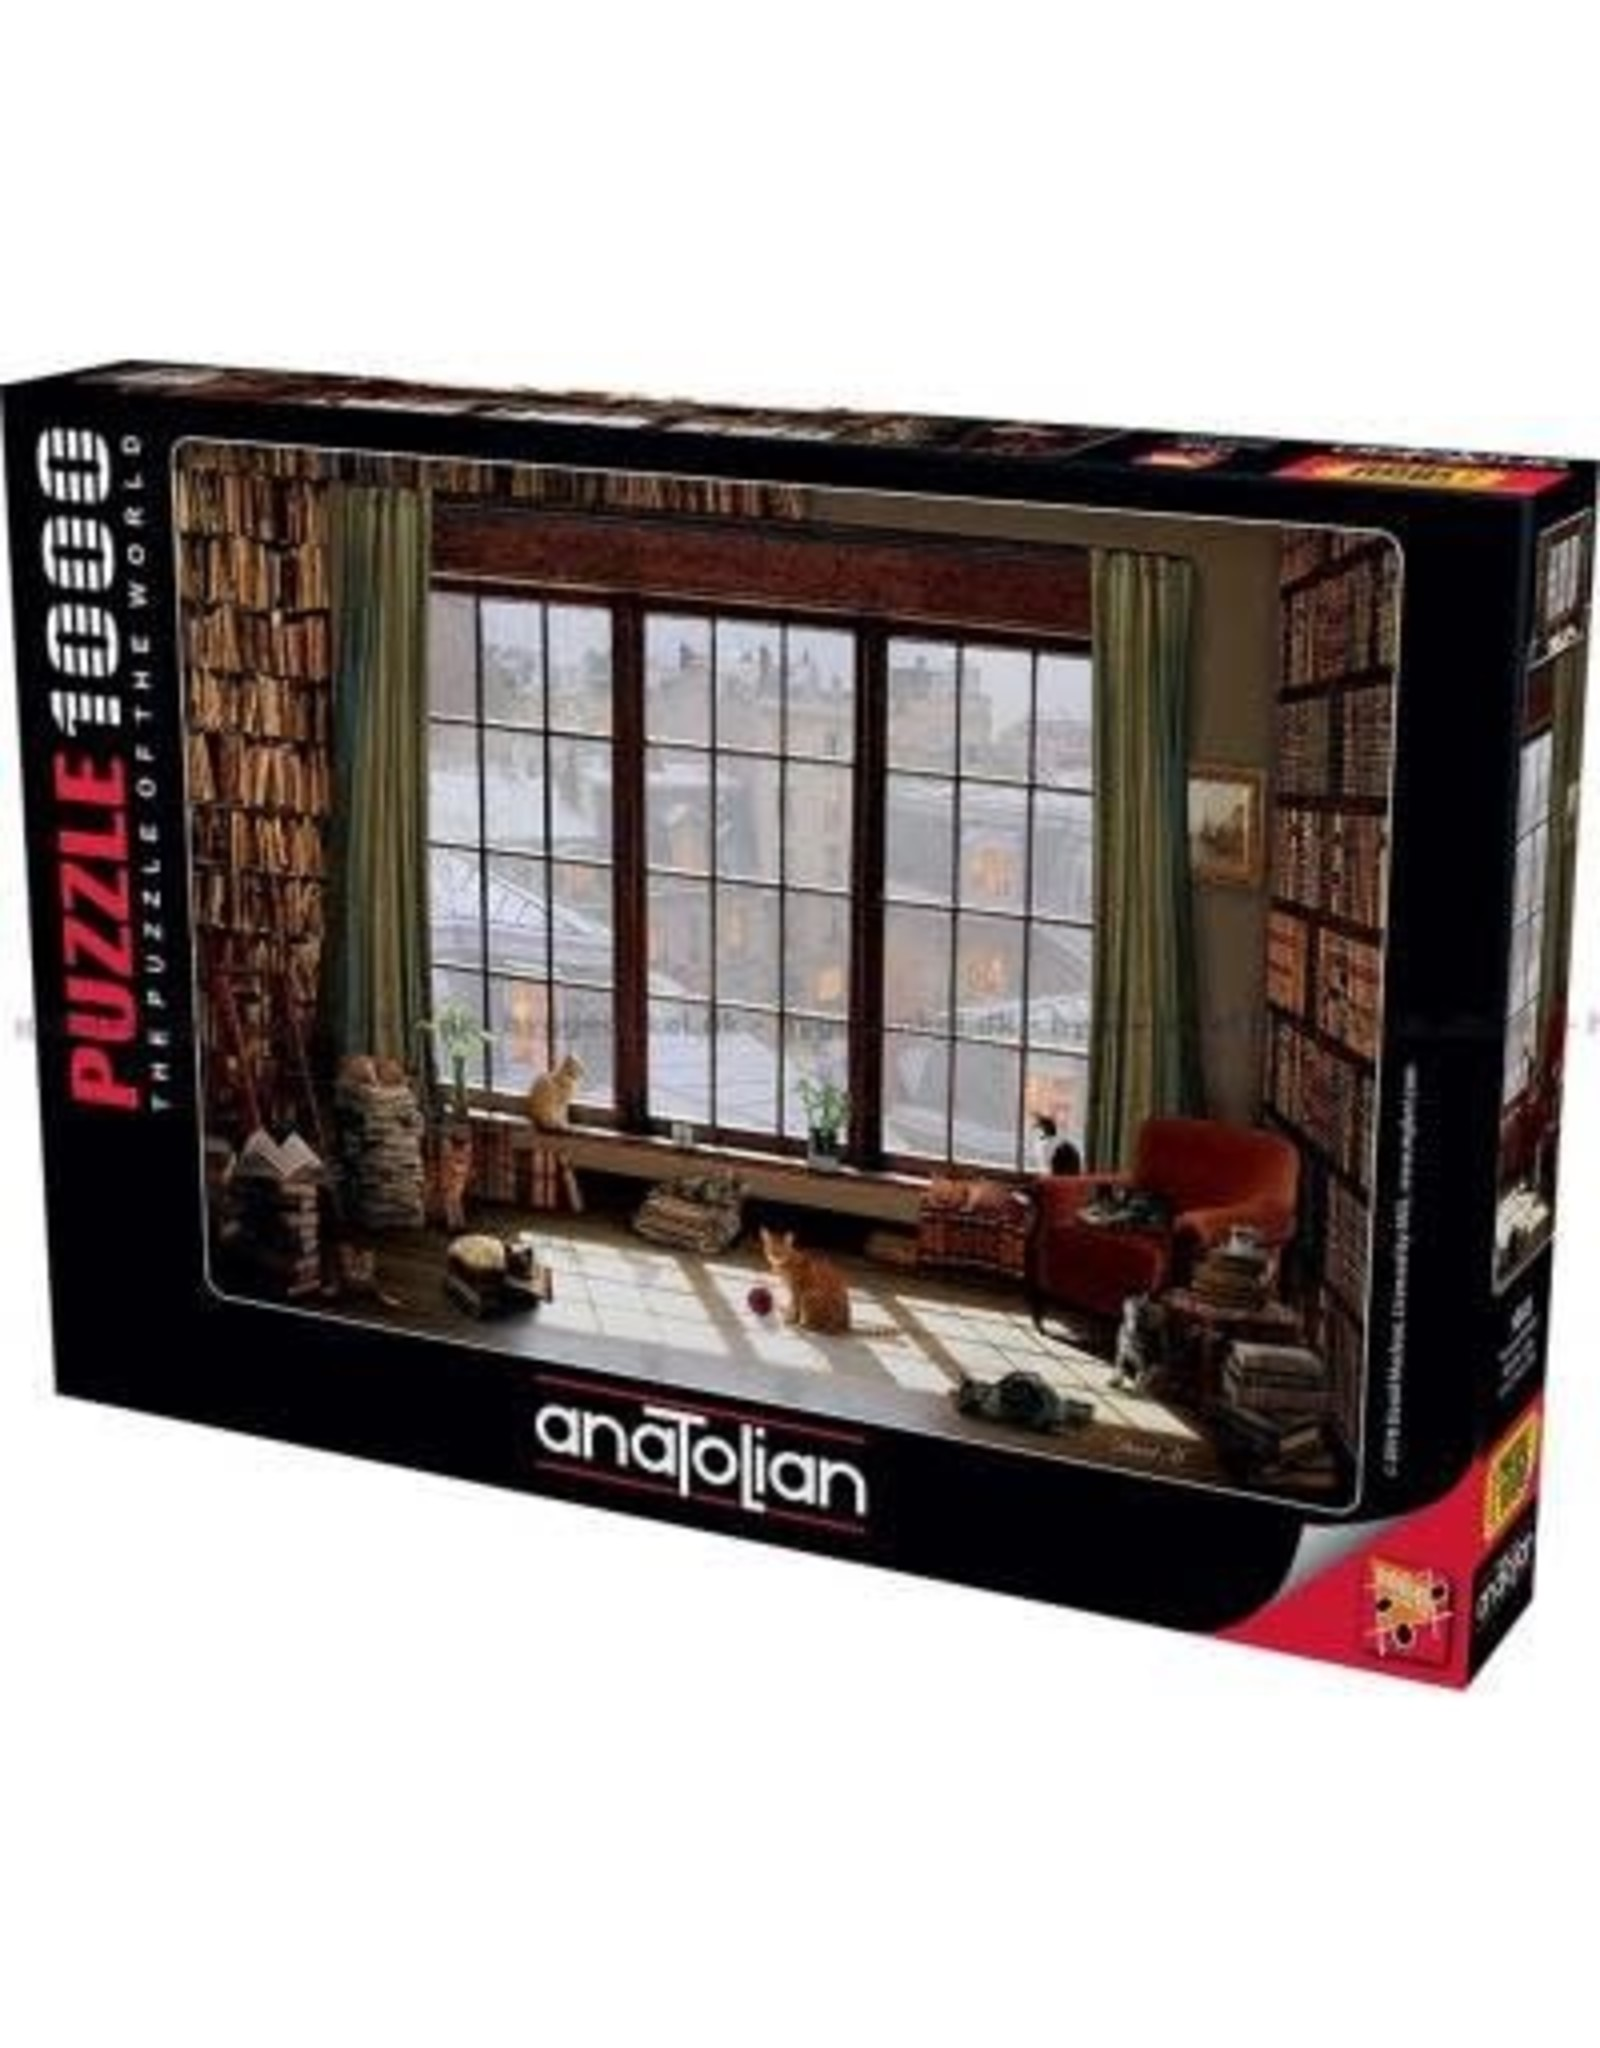 Anatolian 1000PC PUZZLE - WINDOW CATS